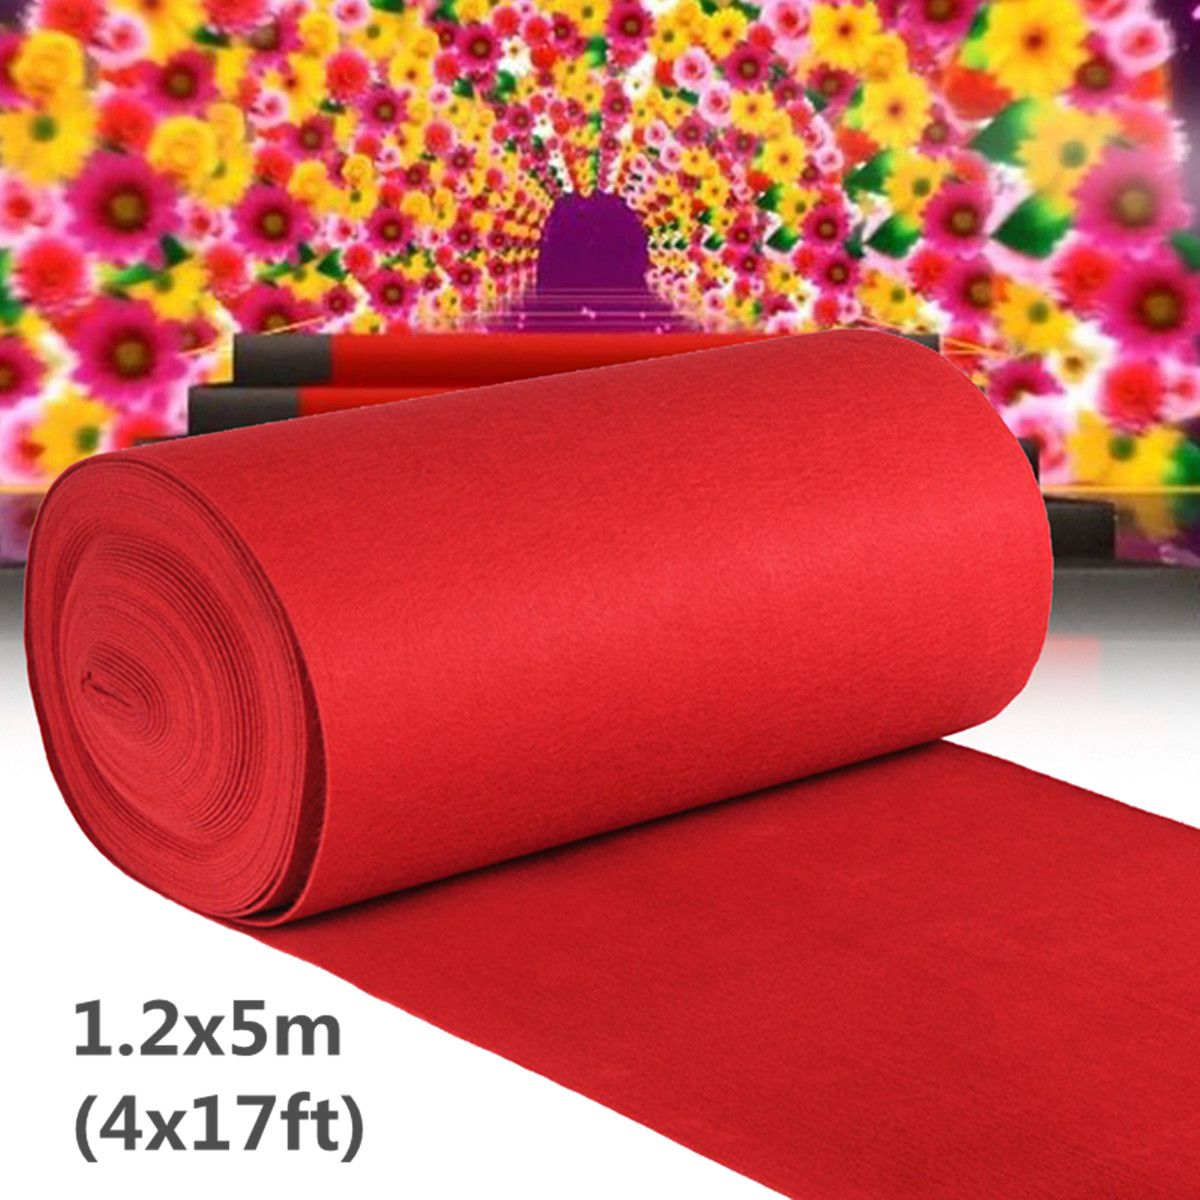 1.2x5m Large Red Carpet Wedding Aisle Floor Runners Hollywood Party Prom Carpet Wedding Decoration Props Accessories Disposable